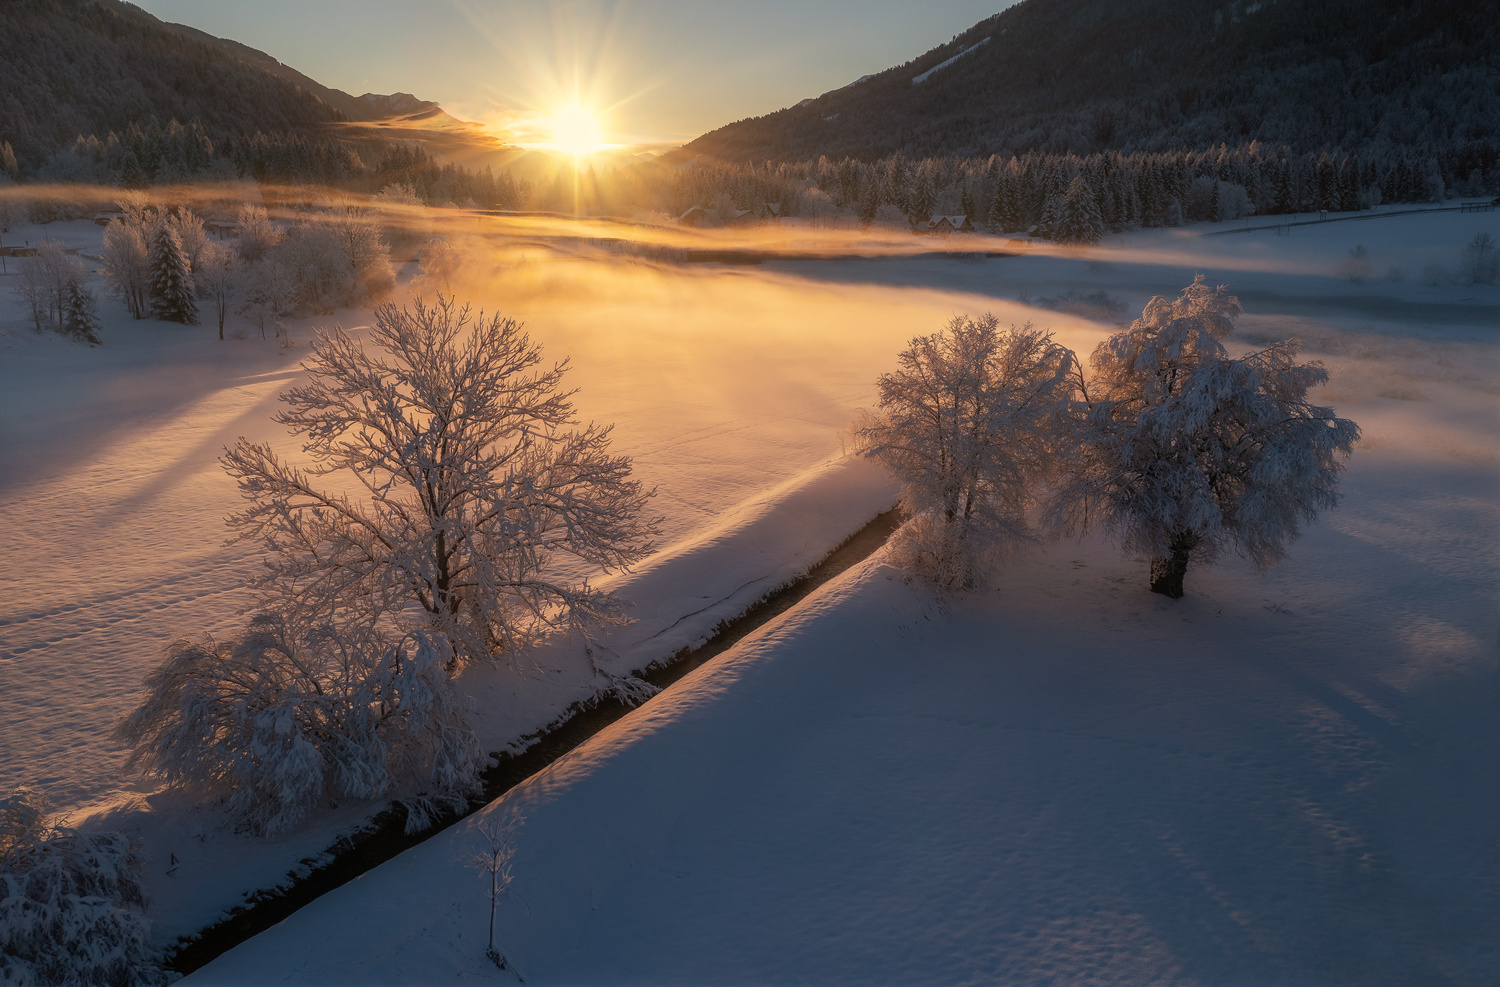 Winter morning by Ales Krivec